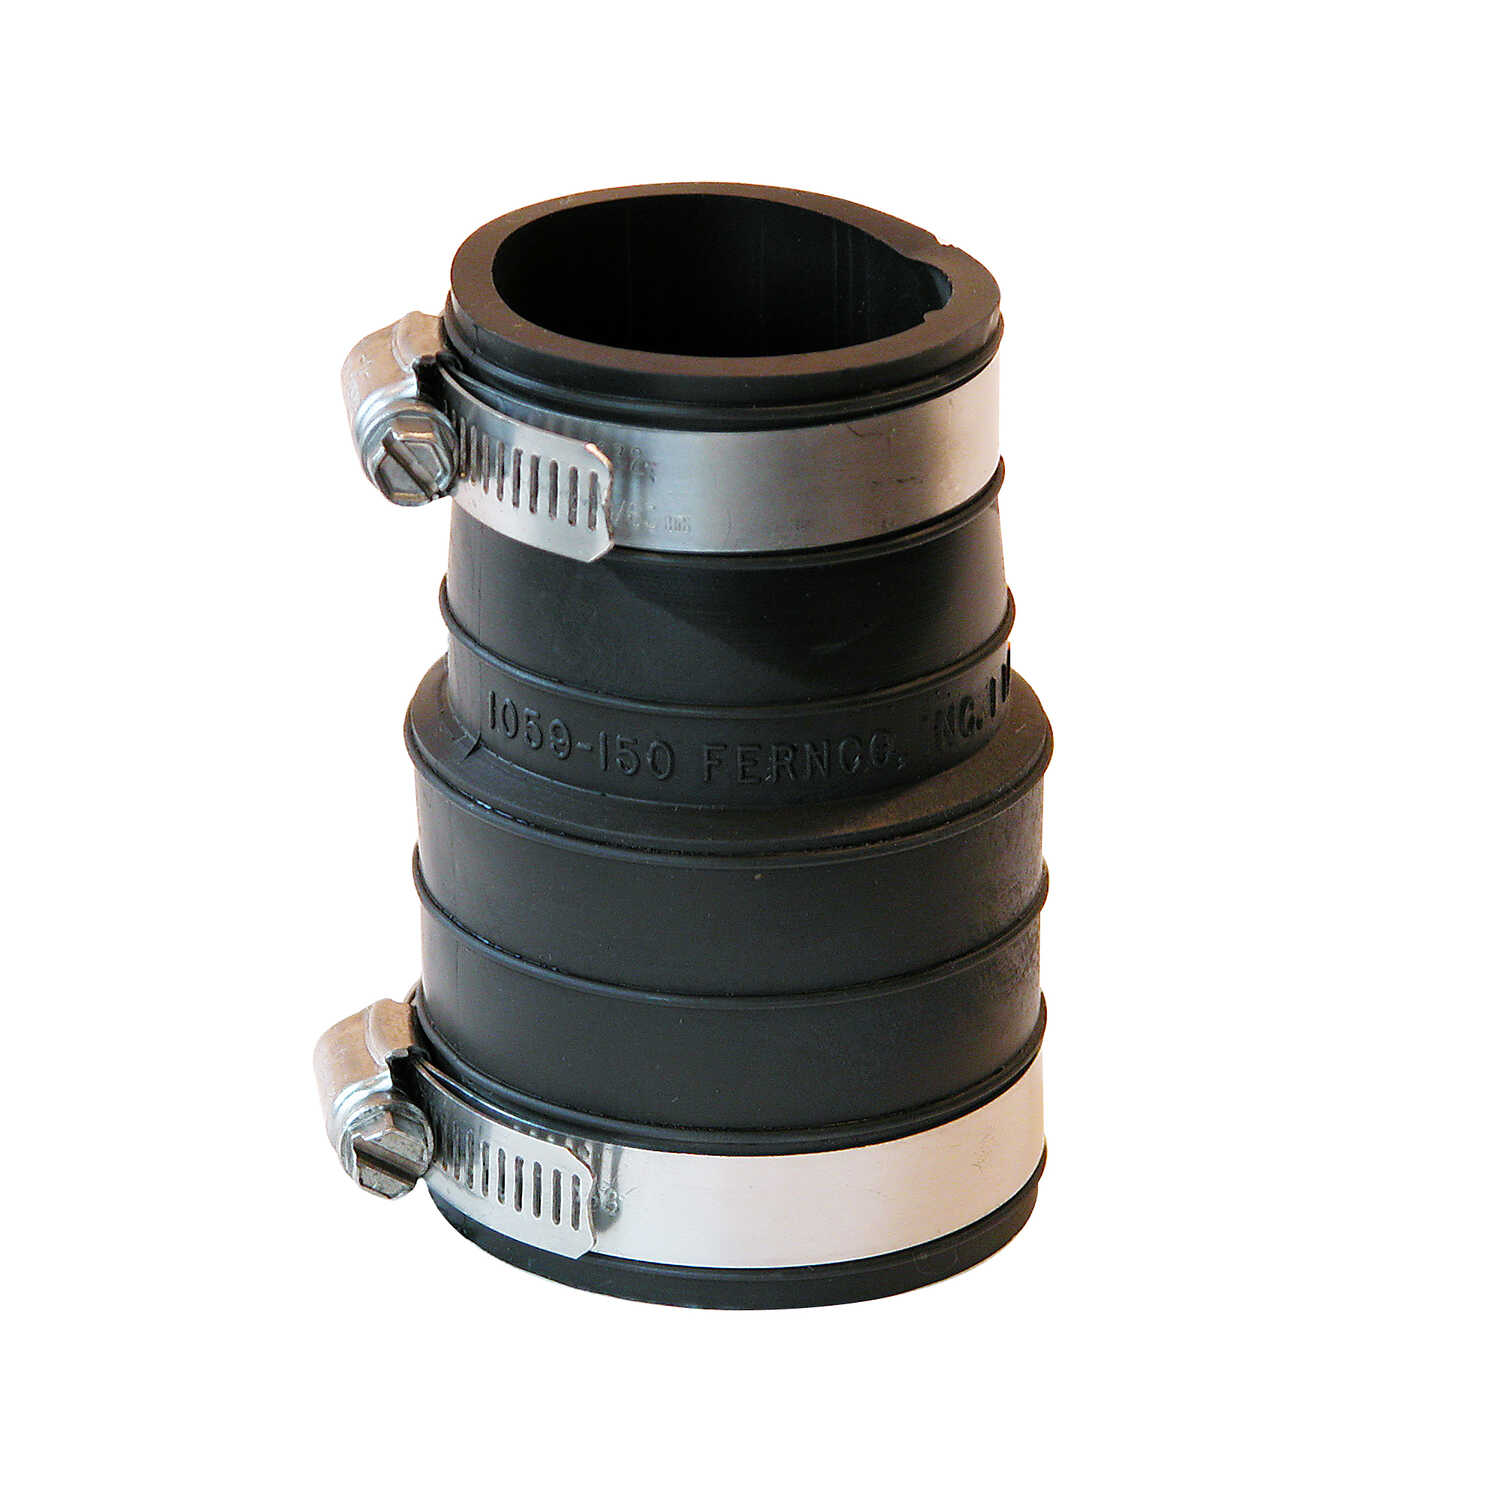 Fernco  Schedule 40  1-1/2 in. Hub   x 1-1/2 in. Dia. Socket  Flexible PVC  For DWV, sewer and drain